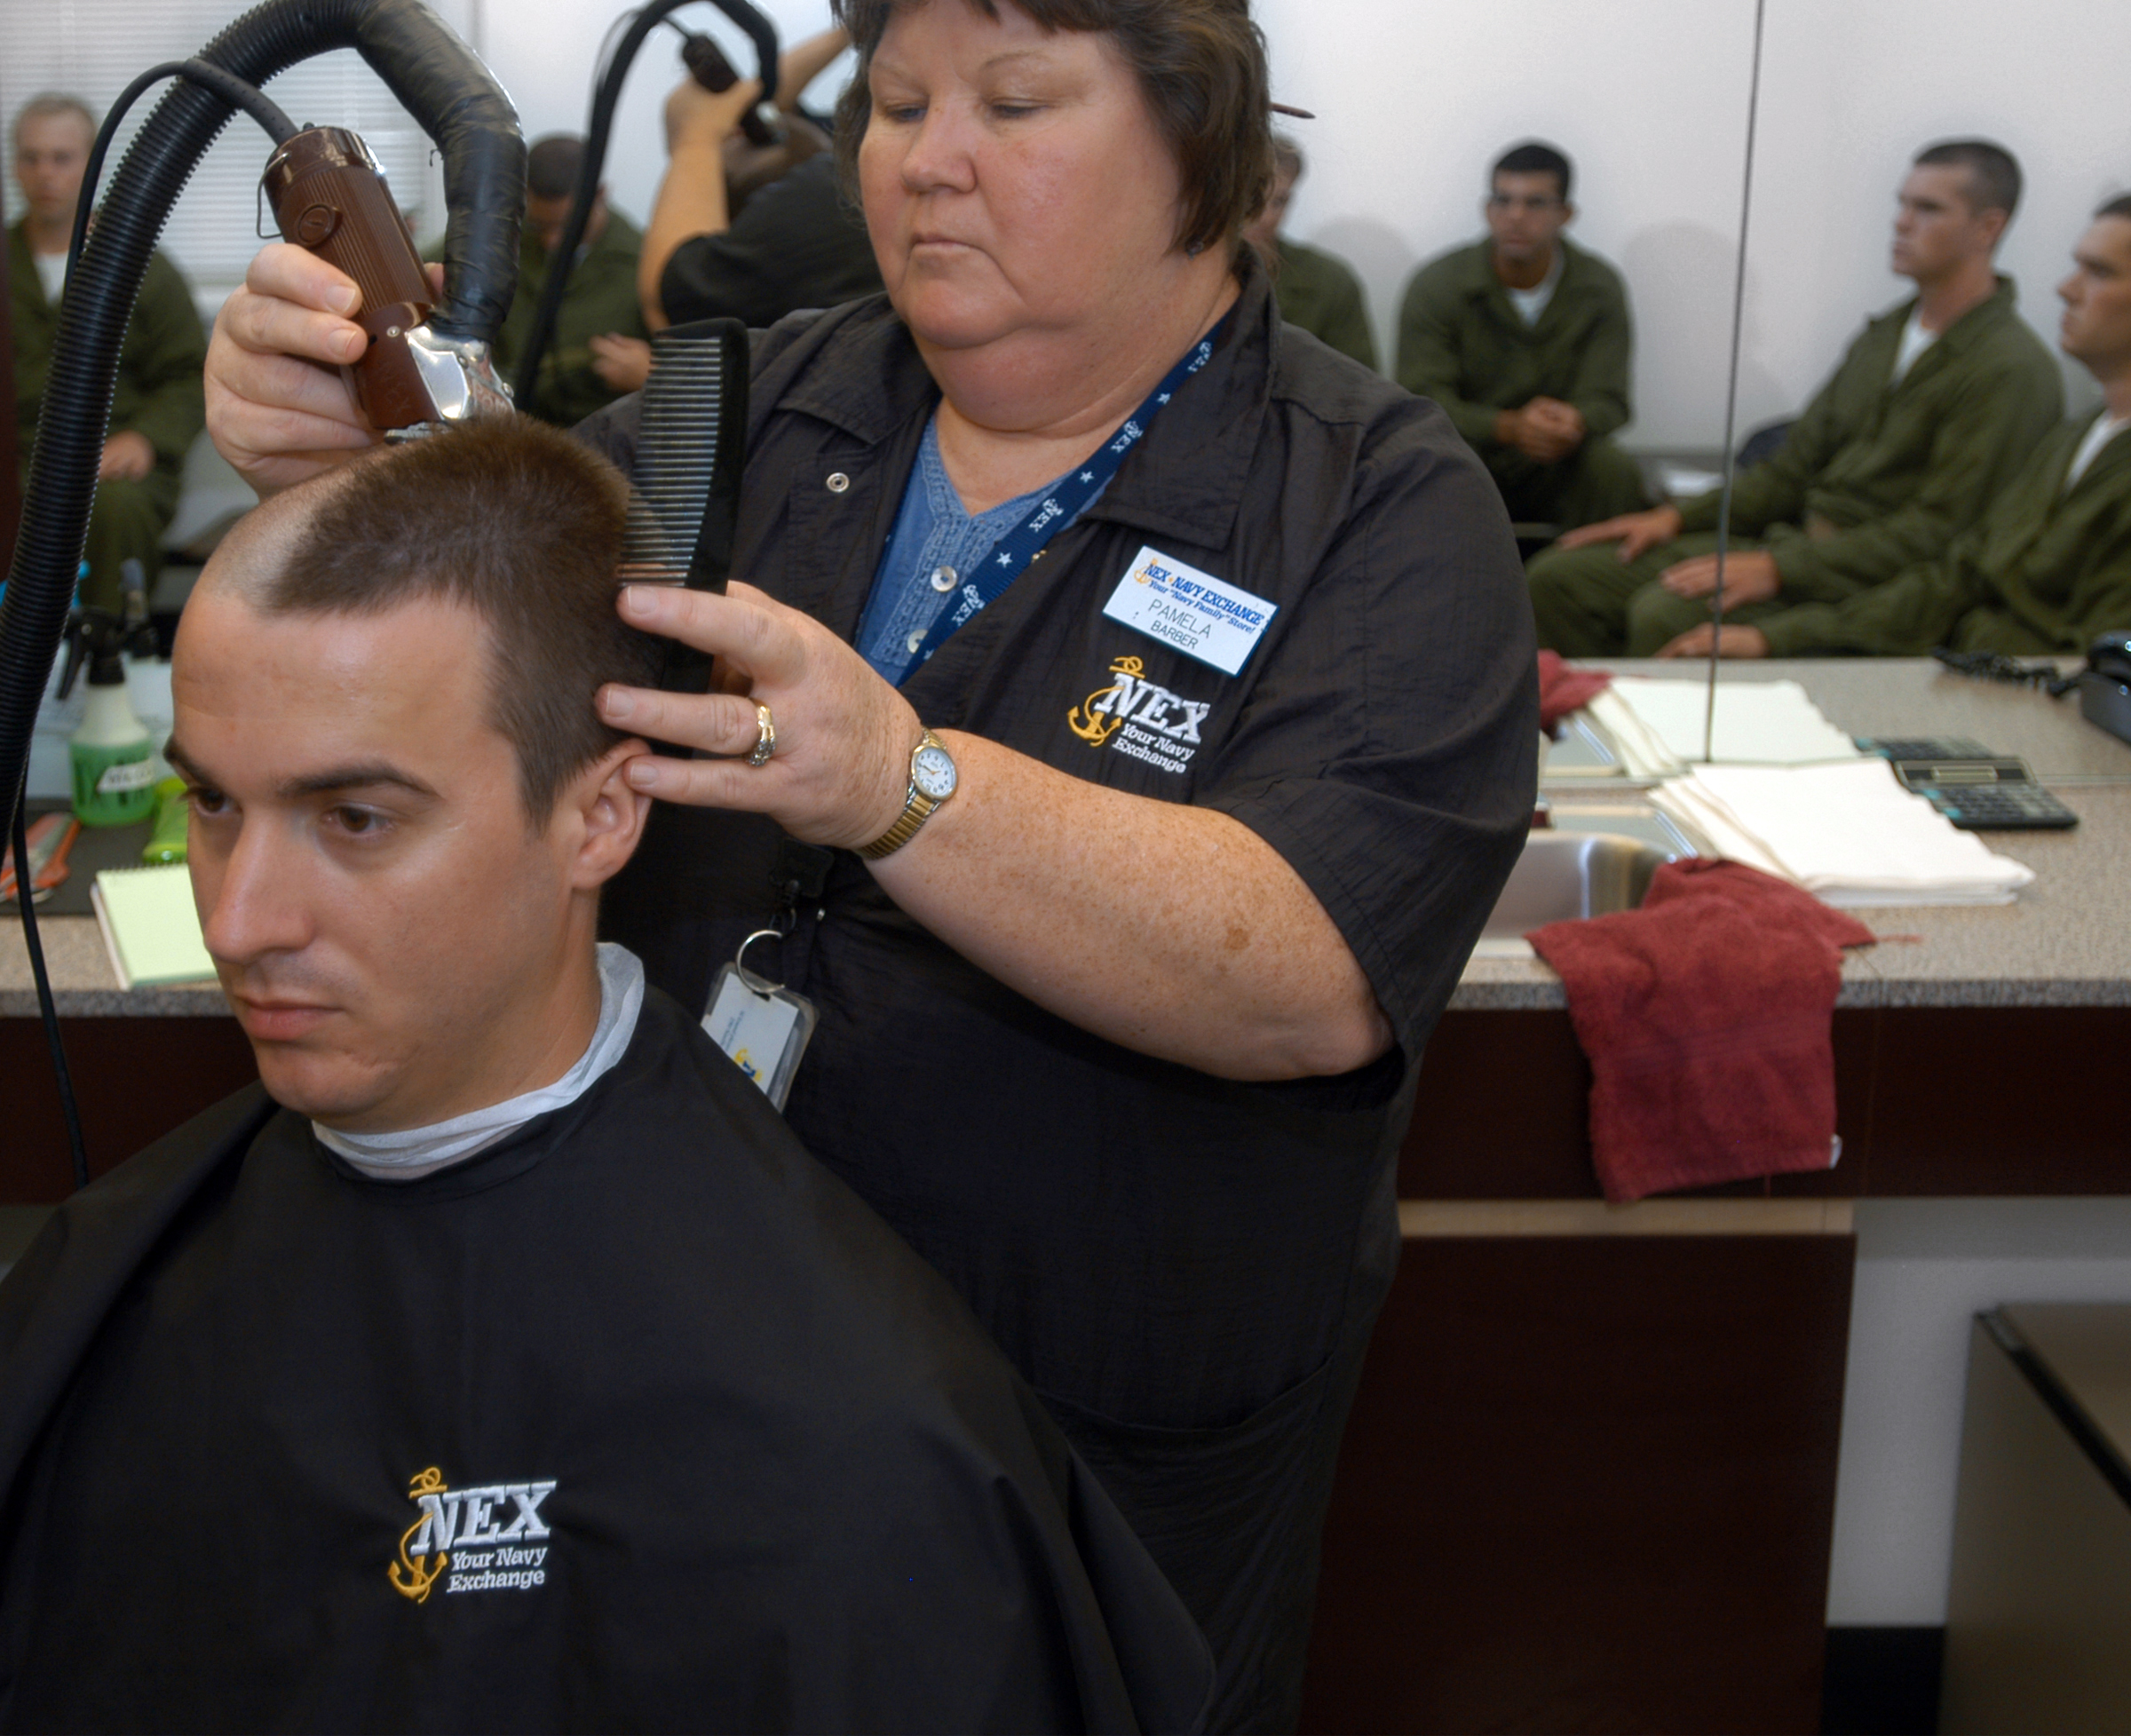 ... Navy_haircut_from_Pamela_Pendergrast,_a_barber_with_the_Navy_Exchange